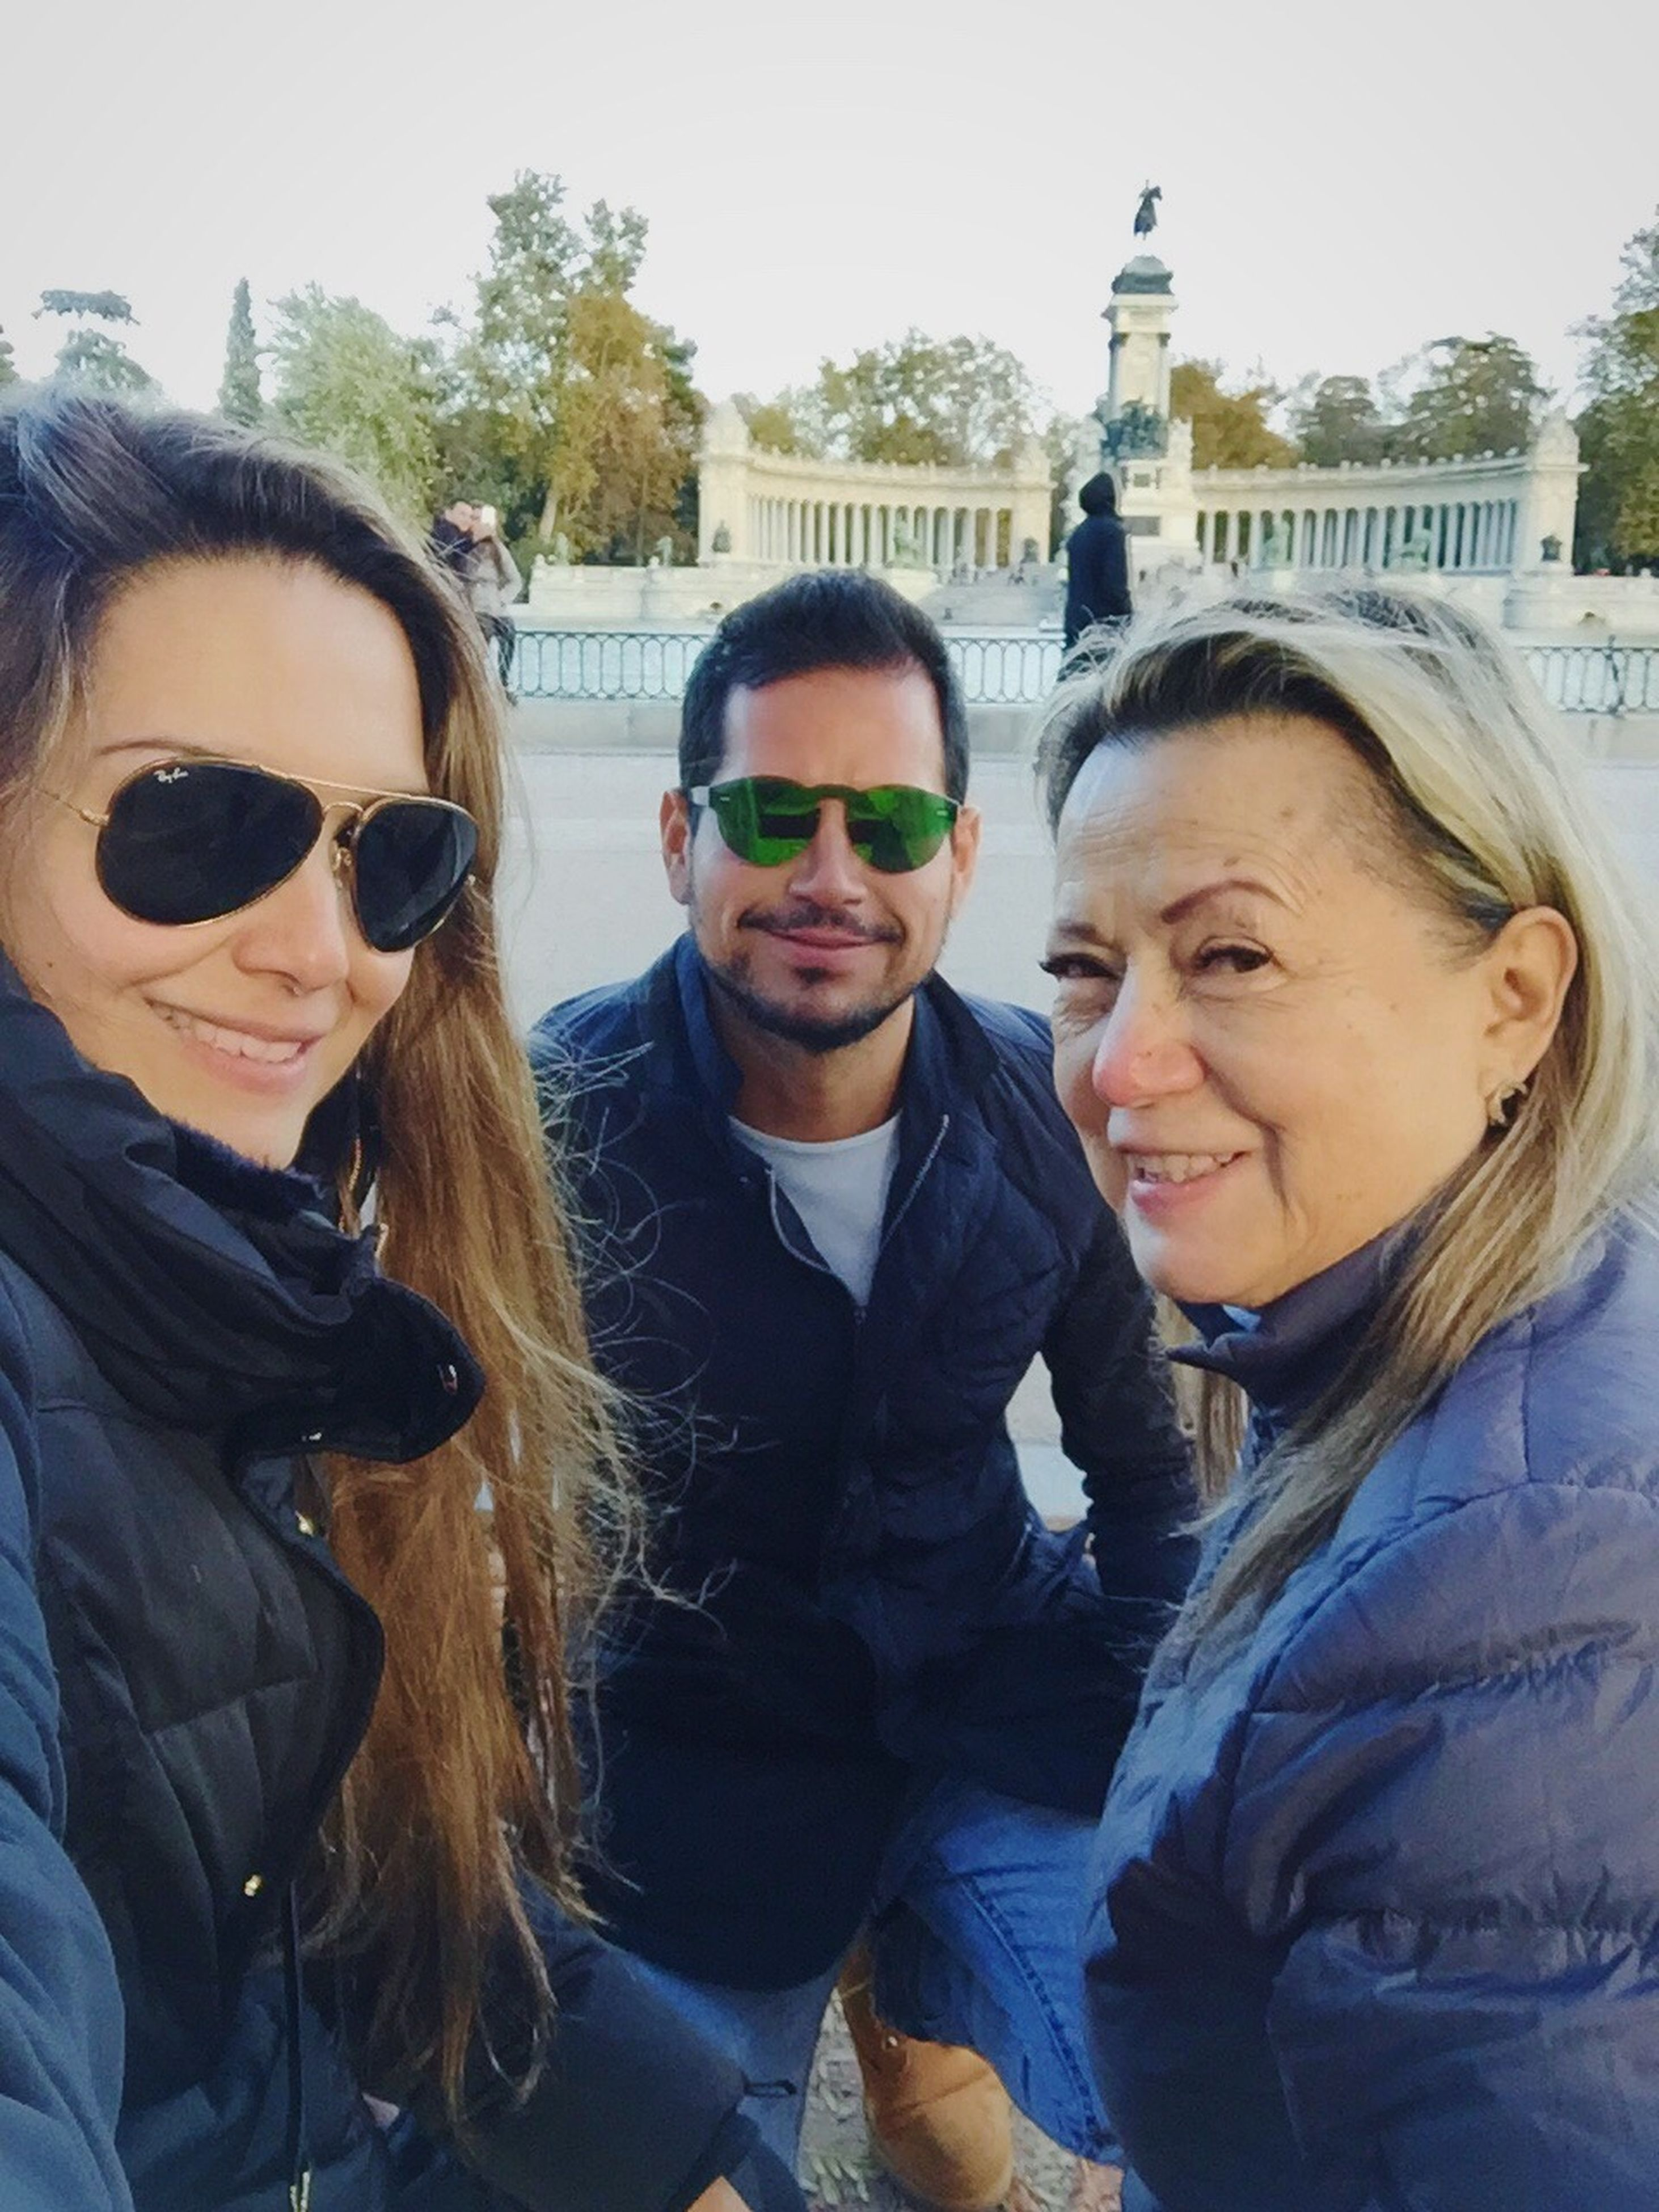 sunglasses, young adult, city, young women, friendship, women, adults only, adult, people, built structure, togetherness, warm clothing, outdoors, architecture, smiling, day, well-dressed